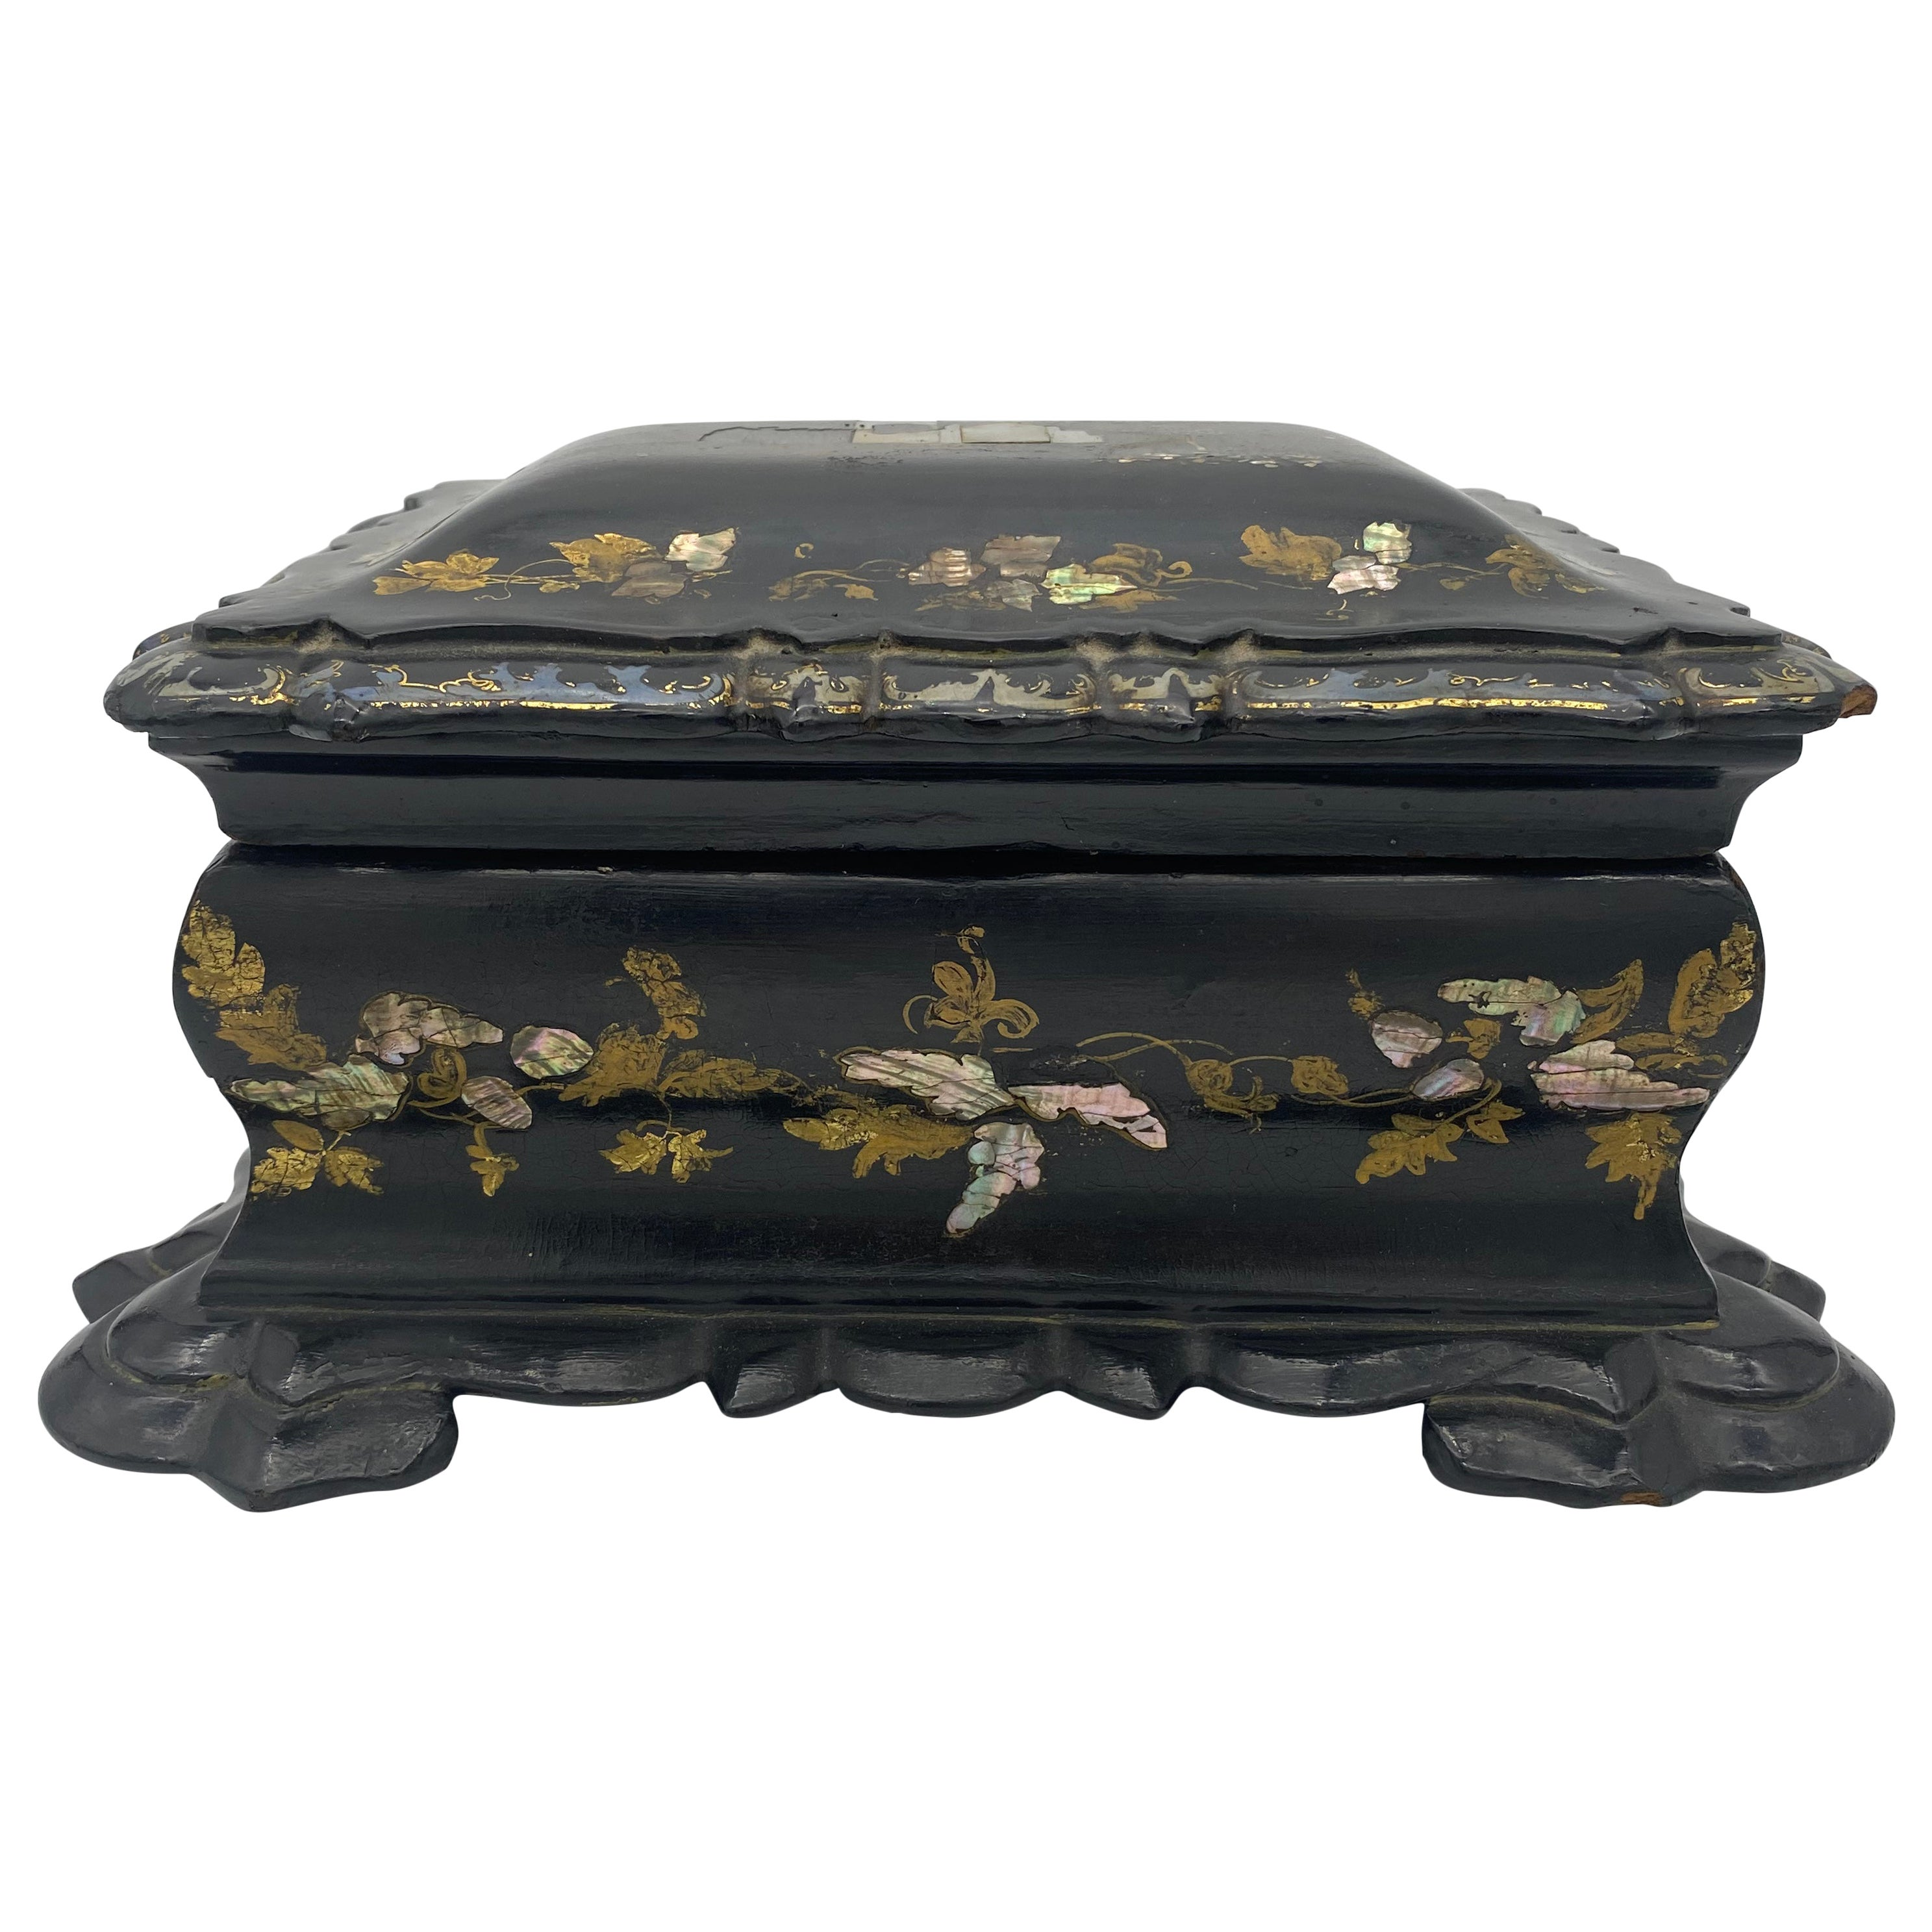 19th Century Chinese Black Lacquer Tea Caddy